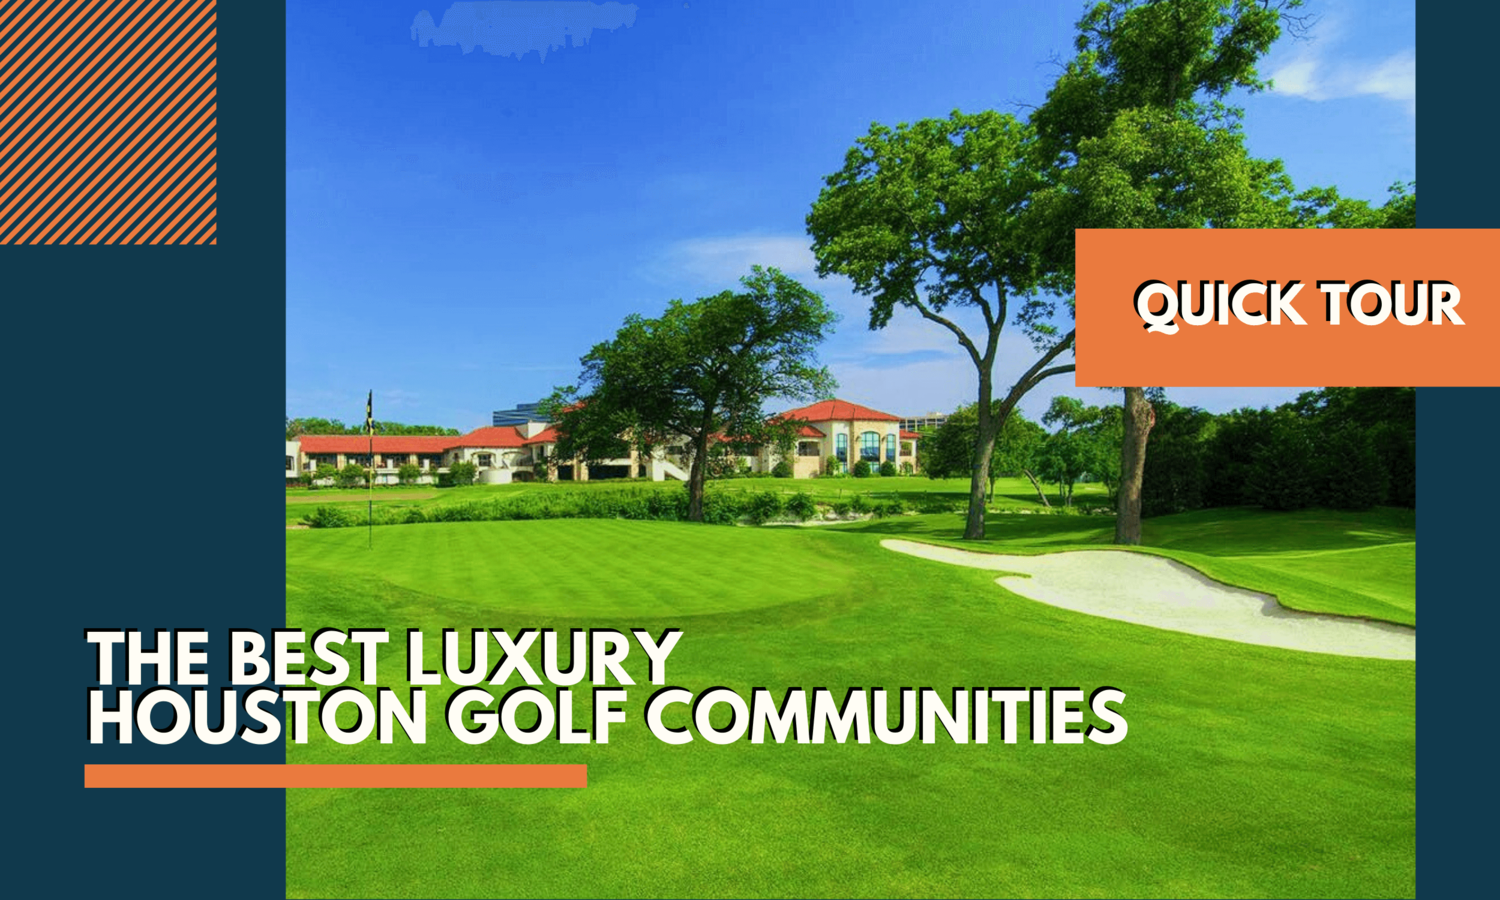 Quick Tour of the Best Luxury Houston Golf Communities